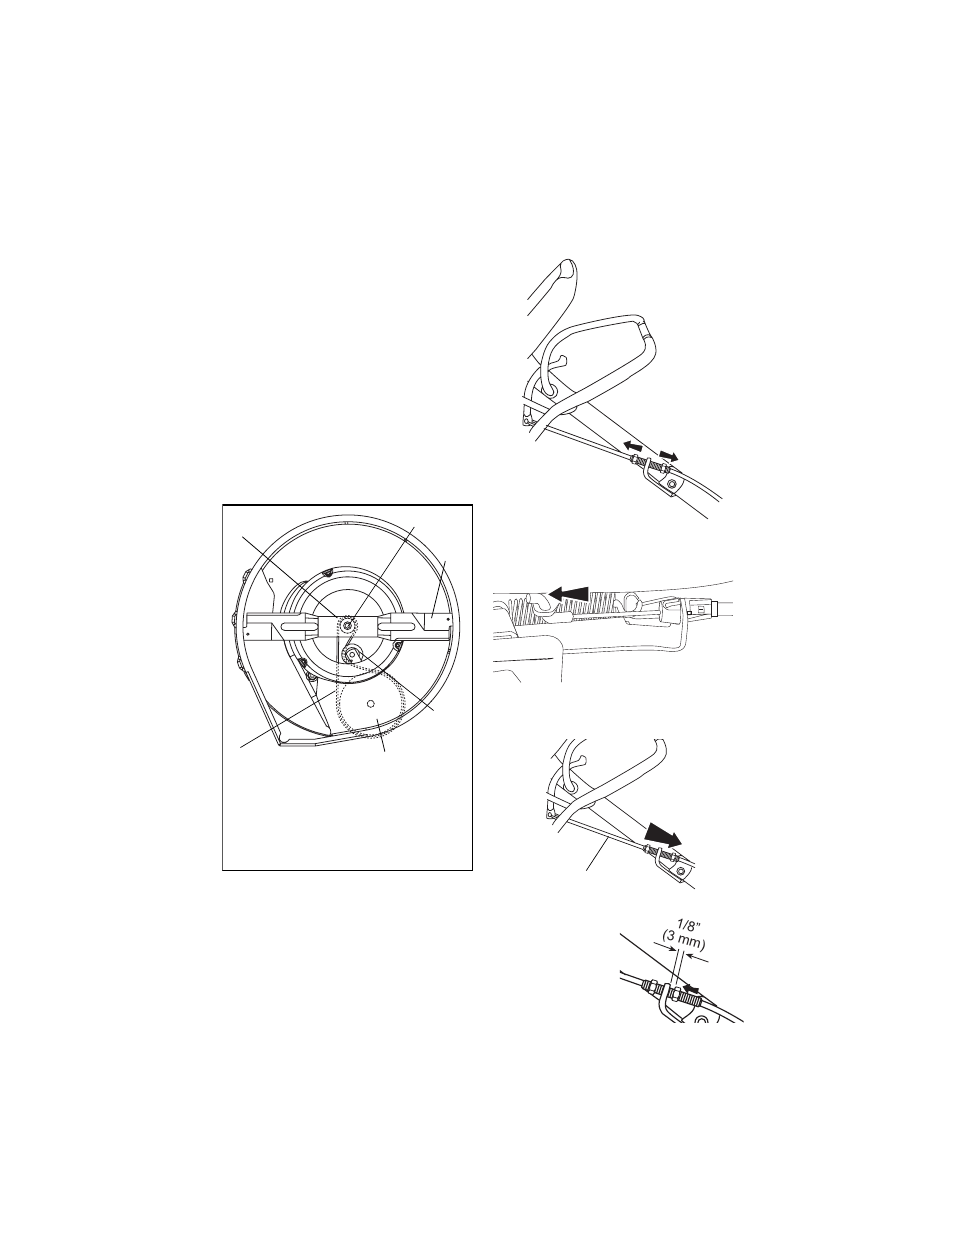 Ariens 911134 lm21sw user manual page 19 28 ariens 911134 lm21sw user manual page 19